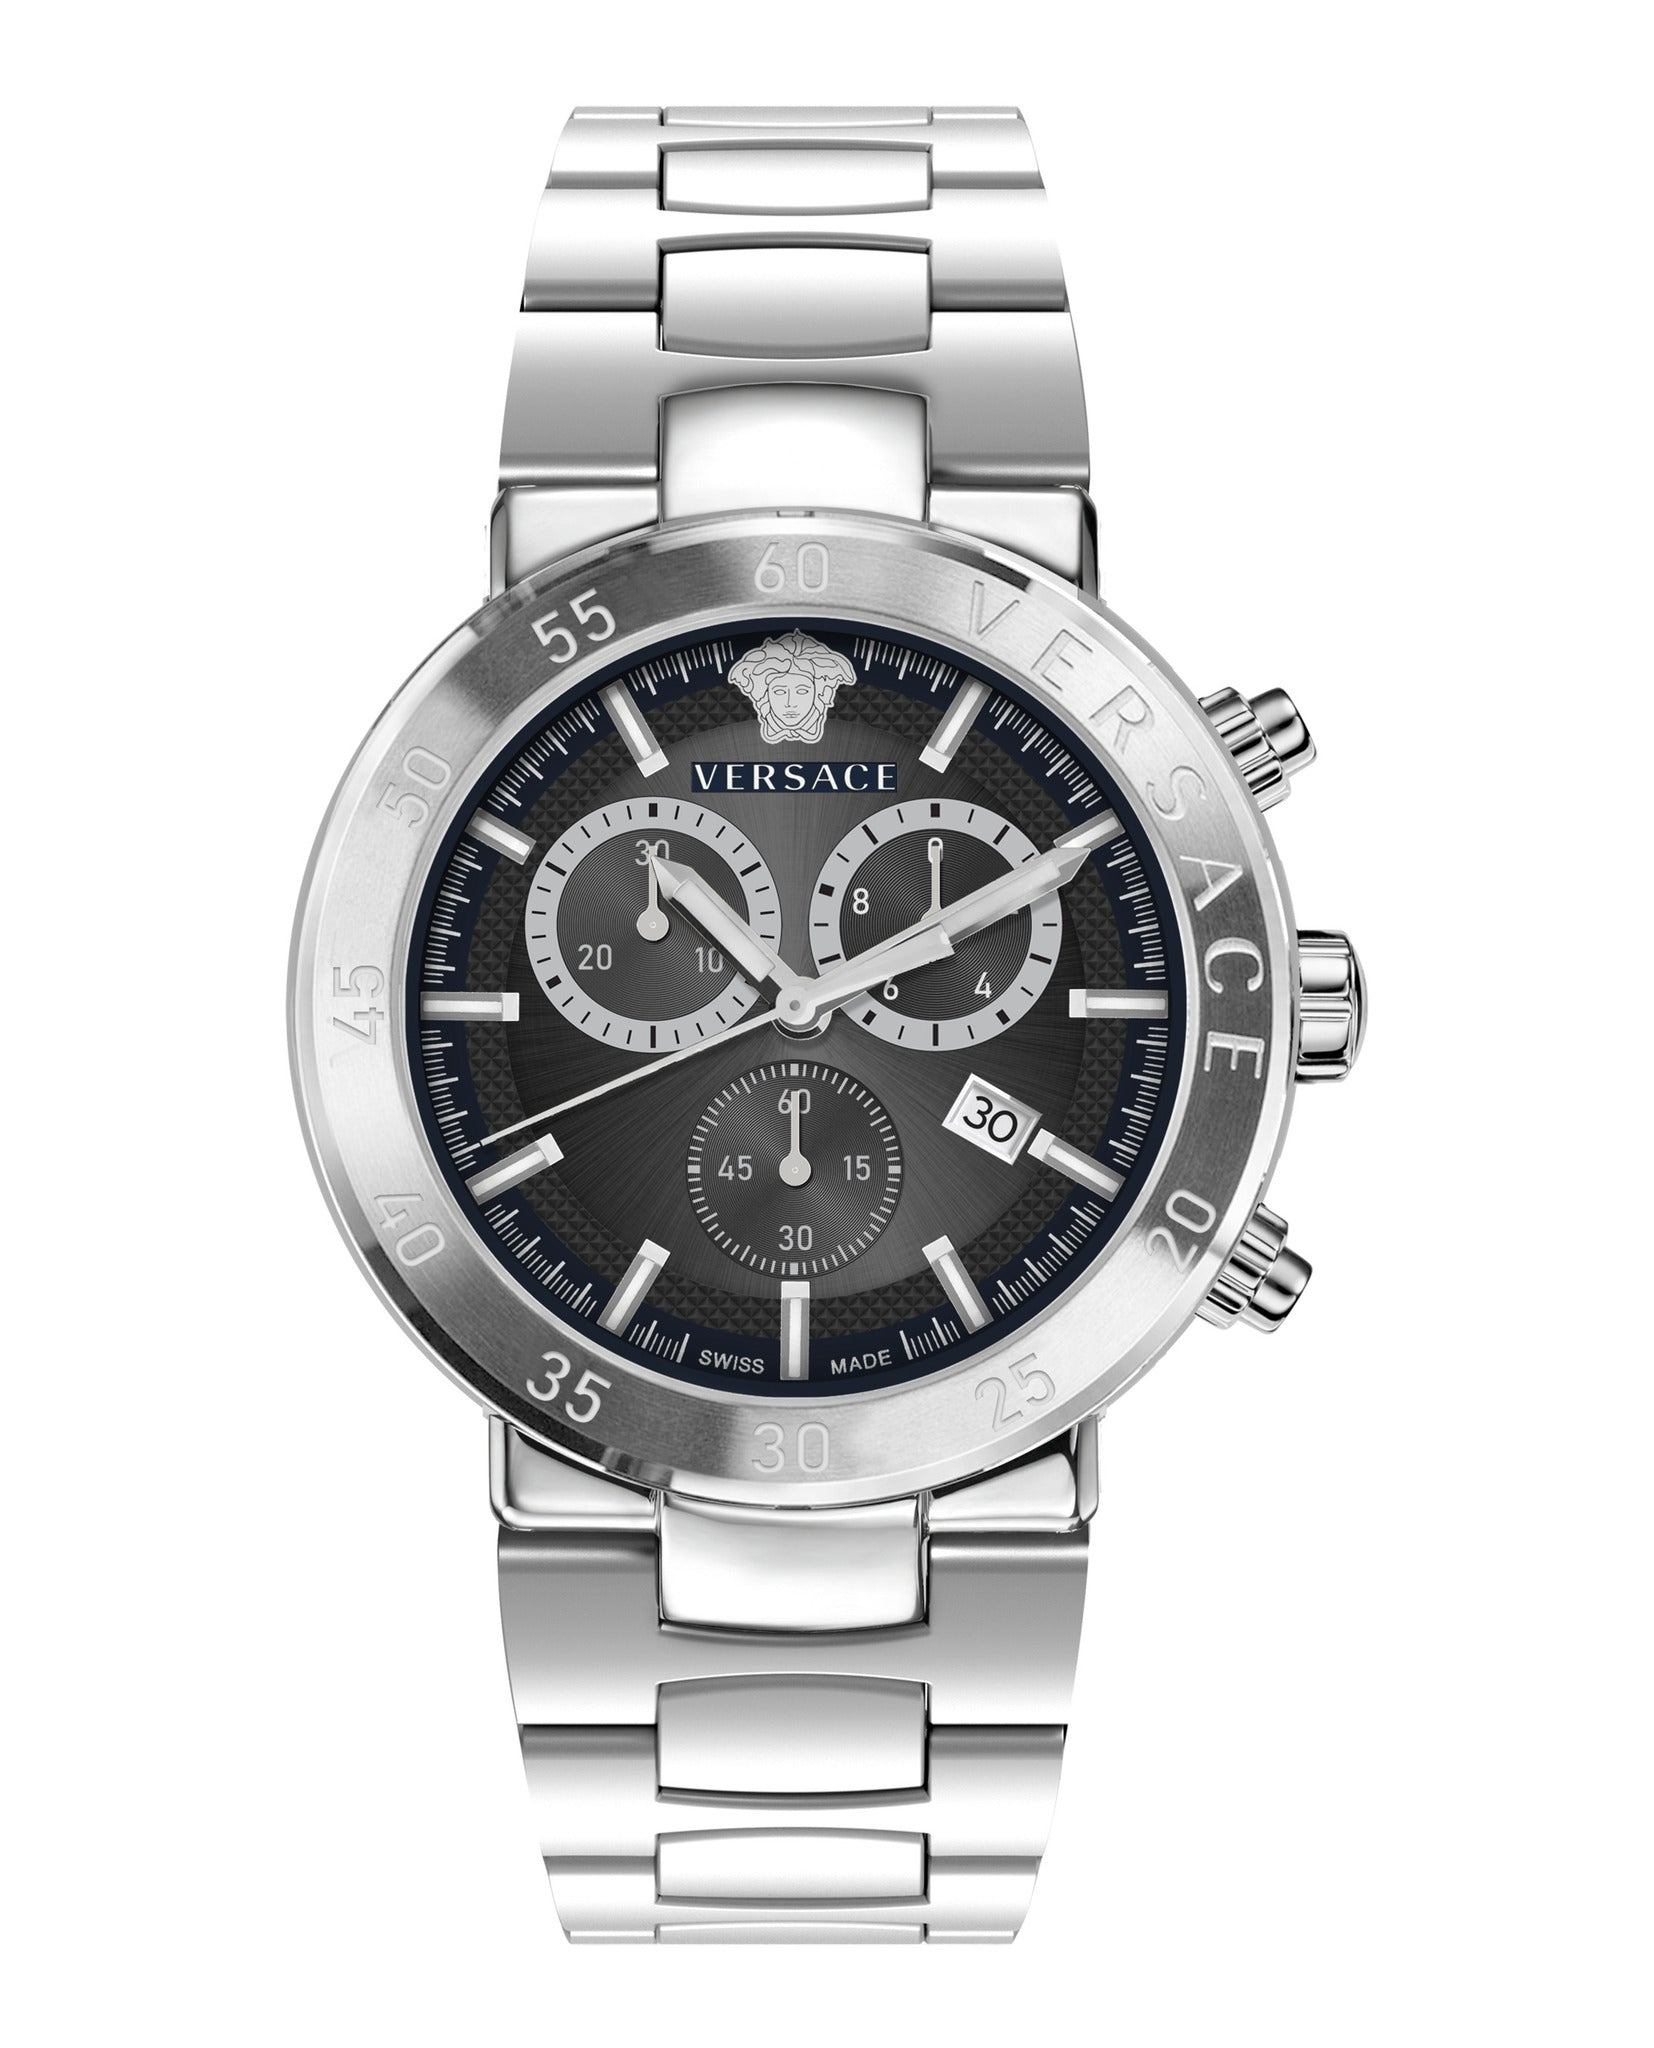 Urban Mystique Chronograph Watch